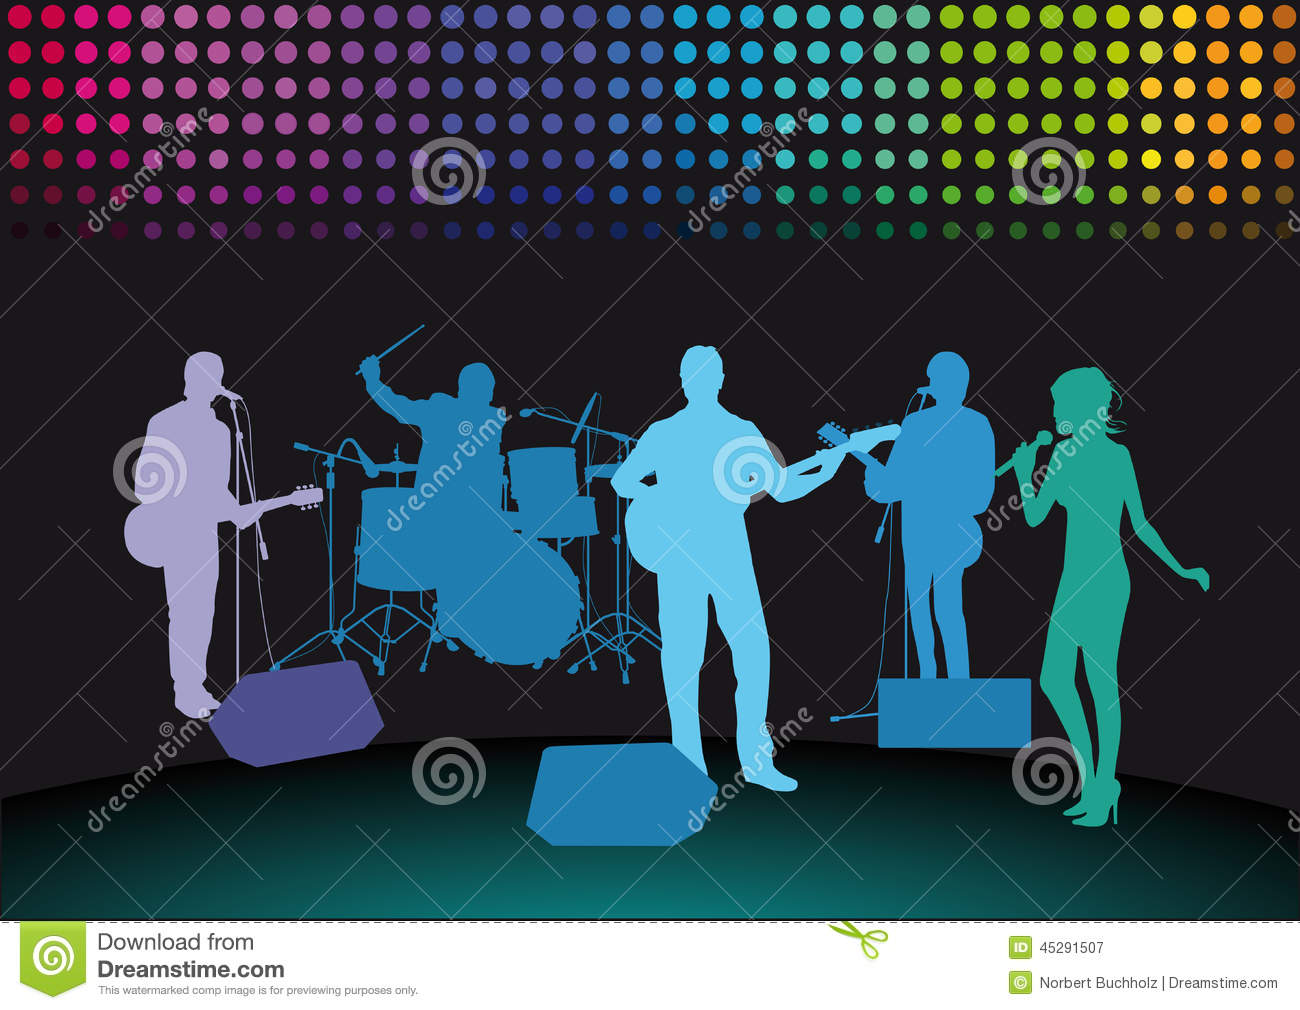 ... drummer and singer, dark lower background with decorative colorful